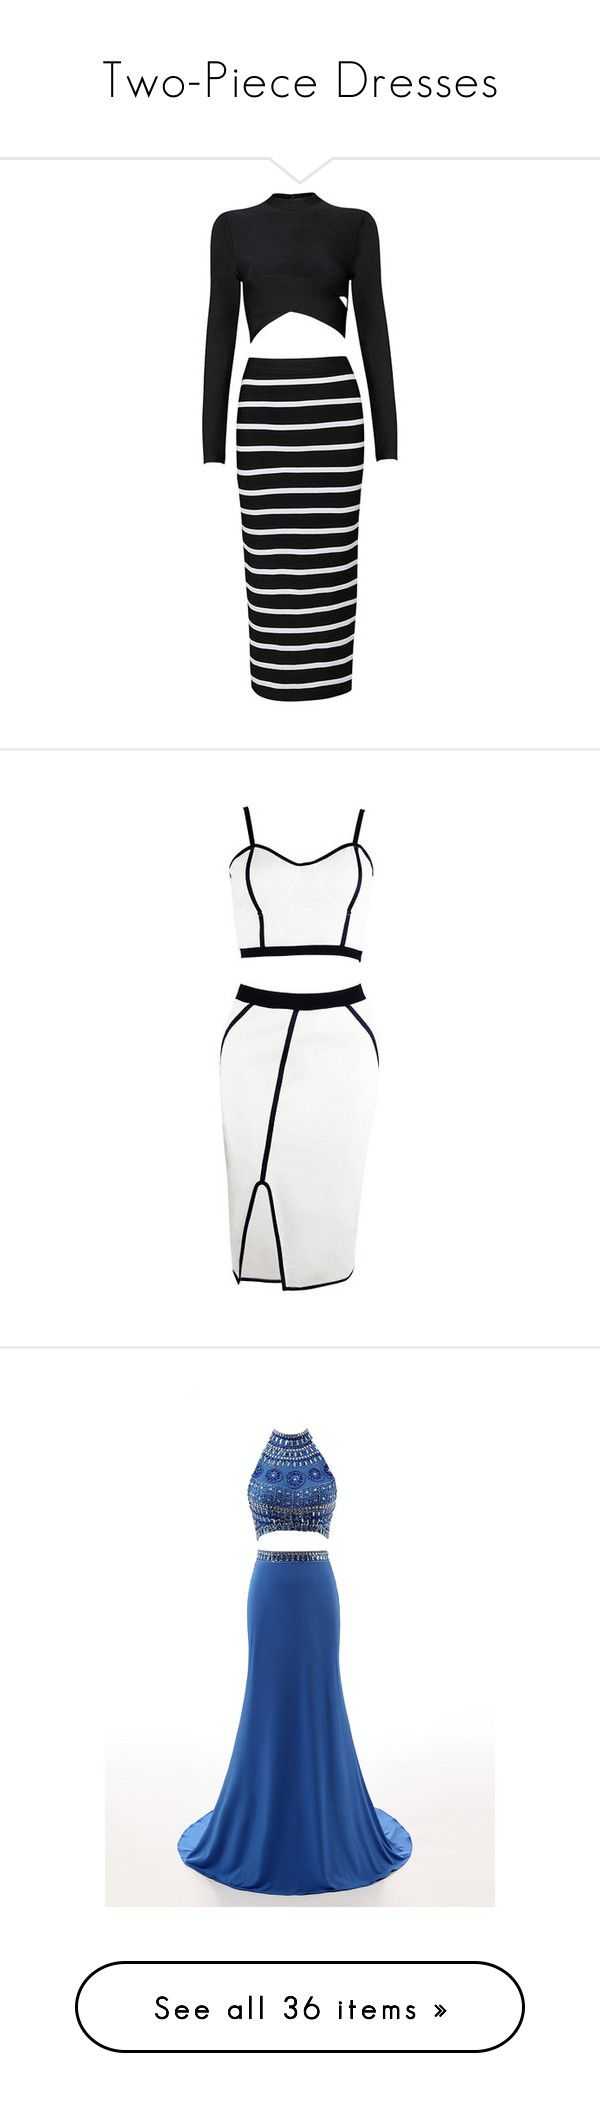 """""""Two-Piece Dresses"""" by purple-pandabear ❤ liked on Polyvore featuring dresses, vestidos, striped bandage dress, 2 piece dress, stripe dress, two piece bandage dress, two-piece dress, skirts, tops and white color dress"""